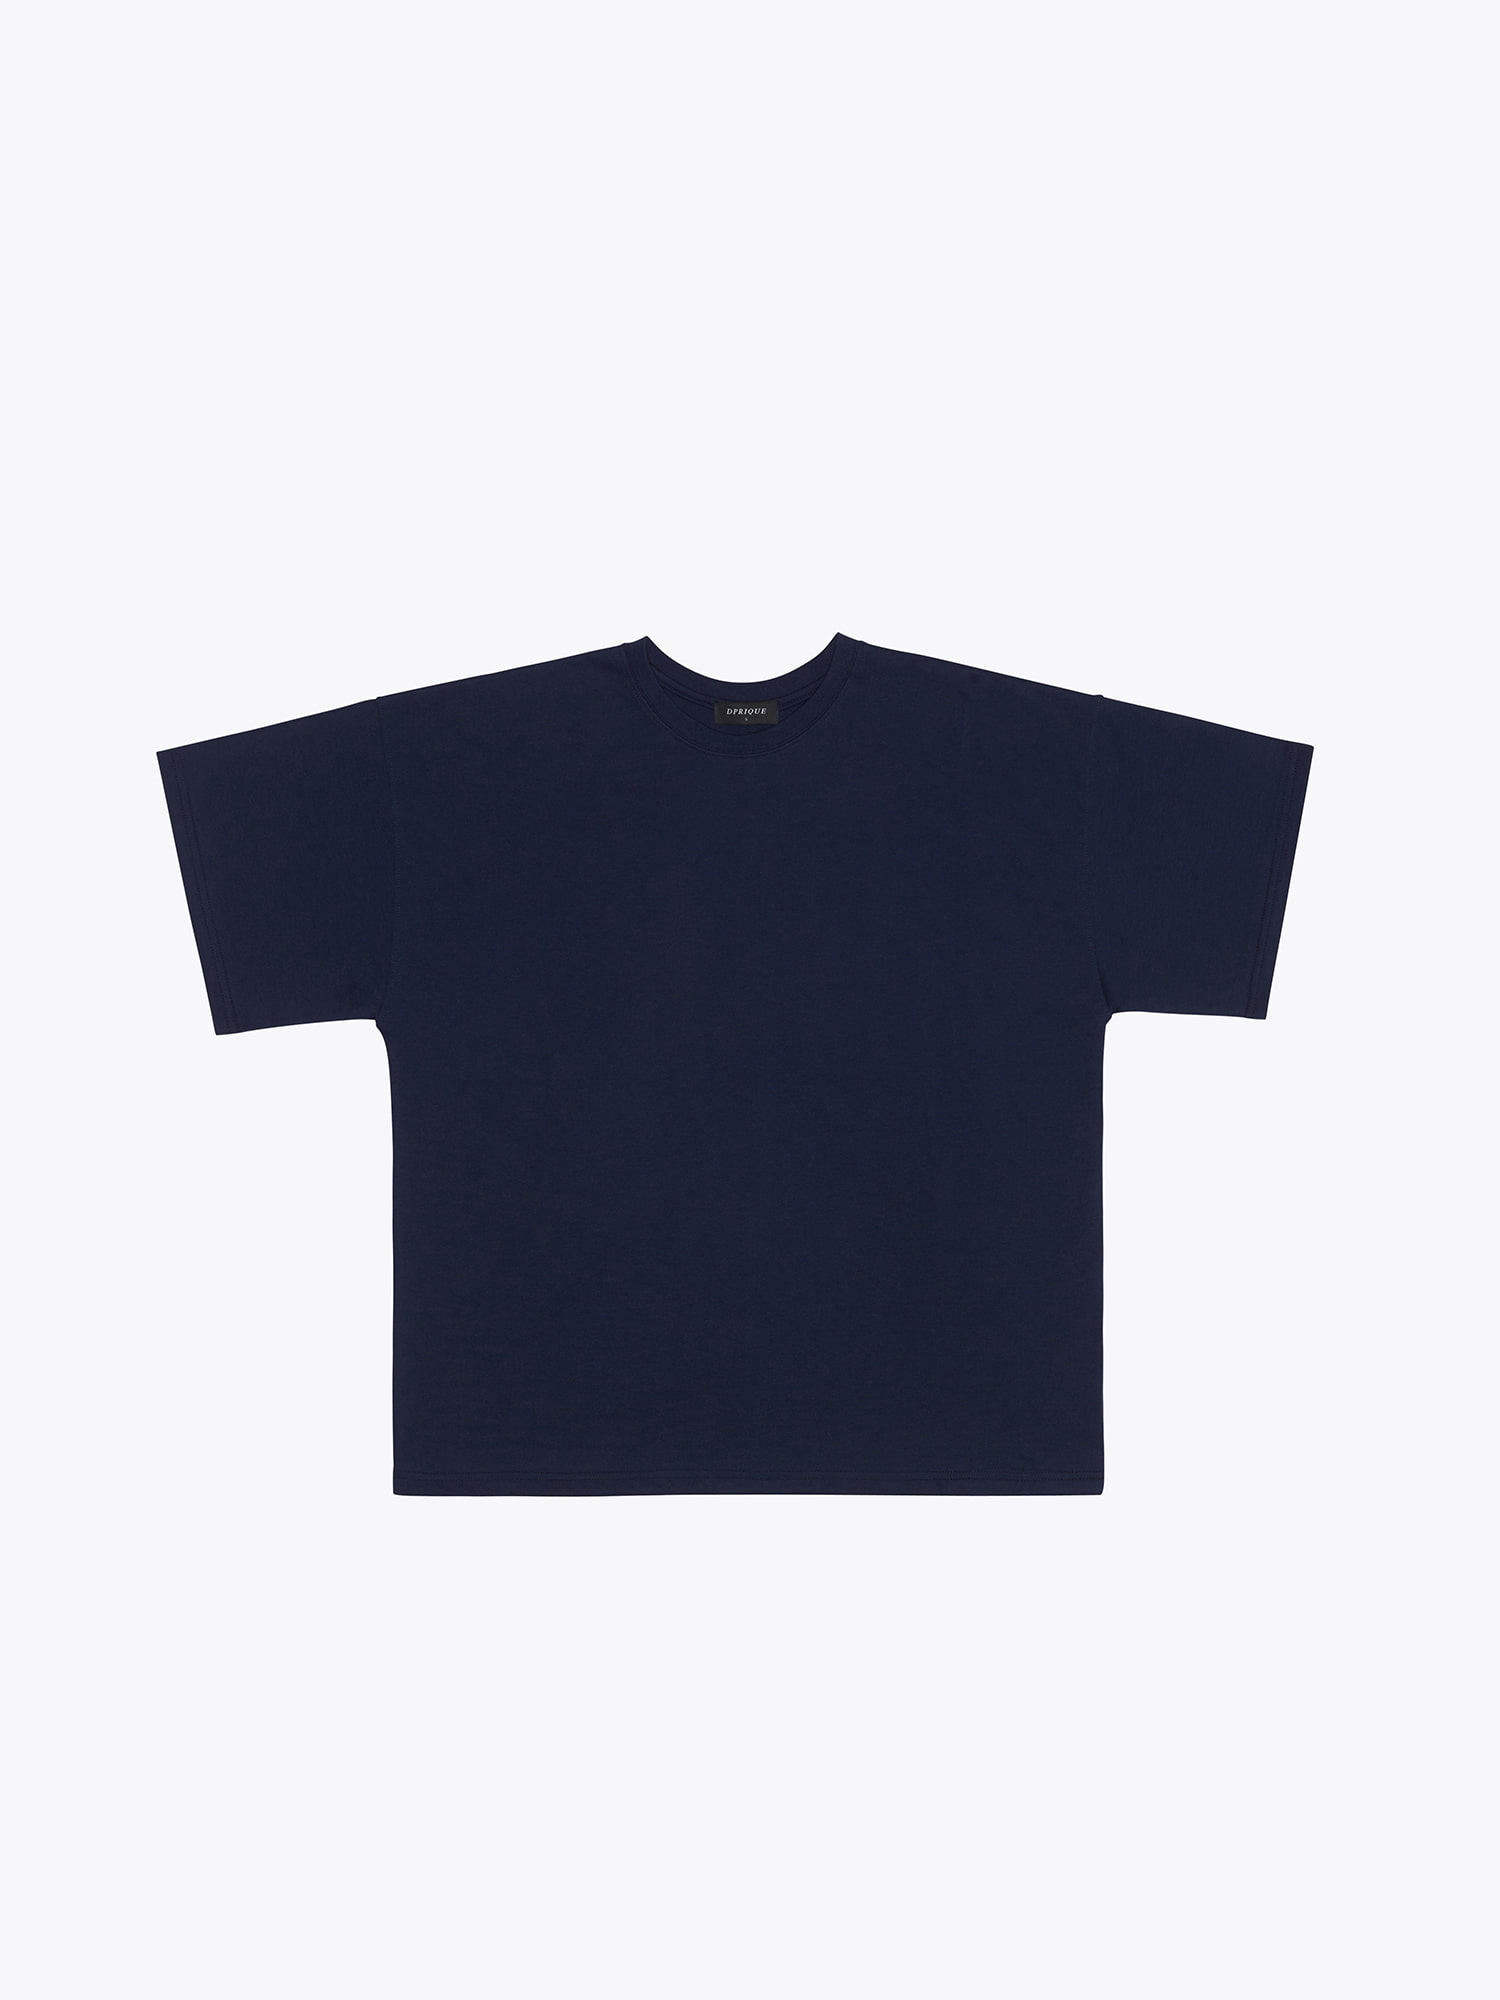 05 Oversized T-Shirt - Navy